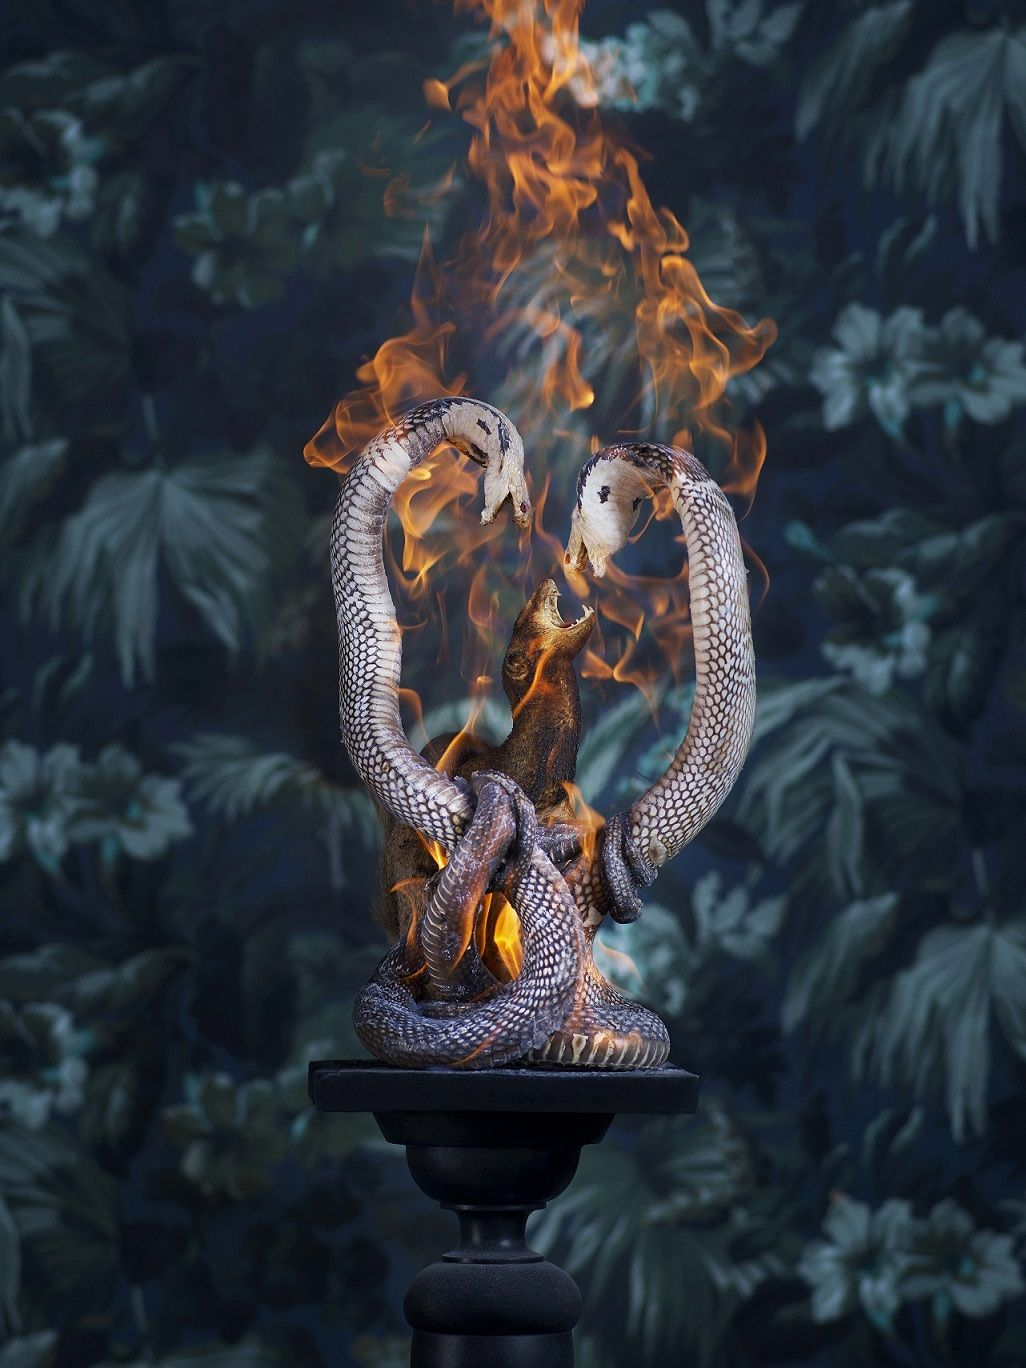 Cobras and Mangoose, série Residence of Impermanence,Christian Houge,Photographie contemporaine